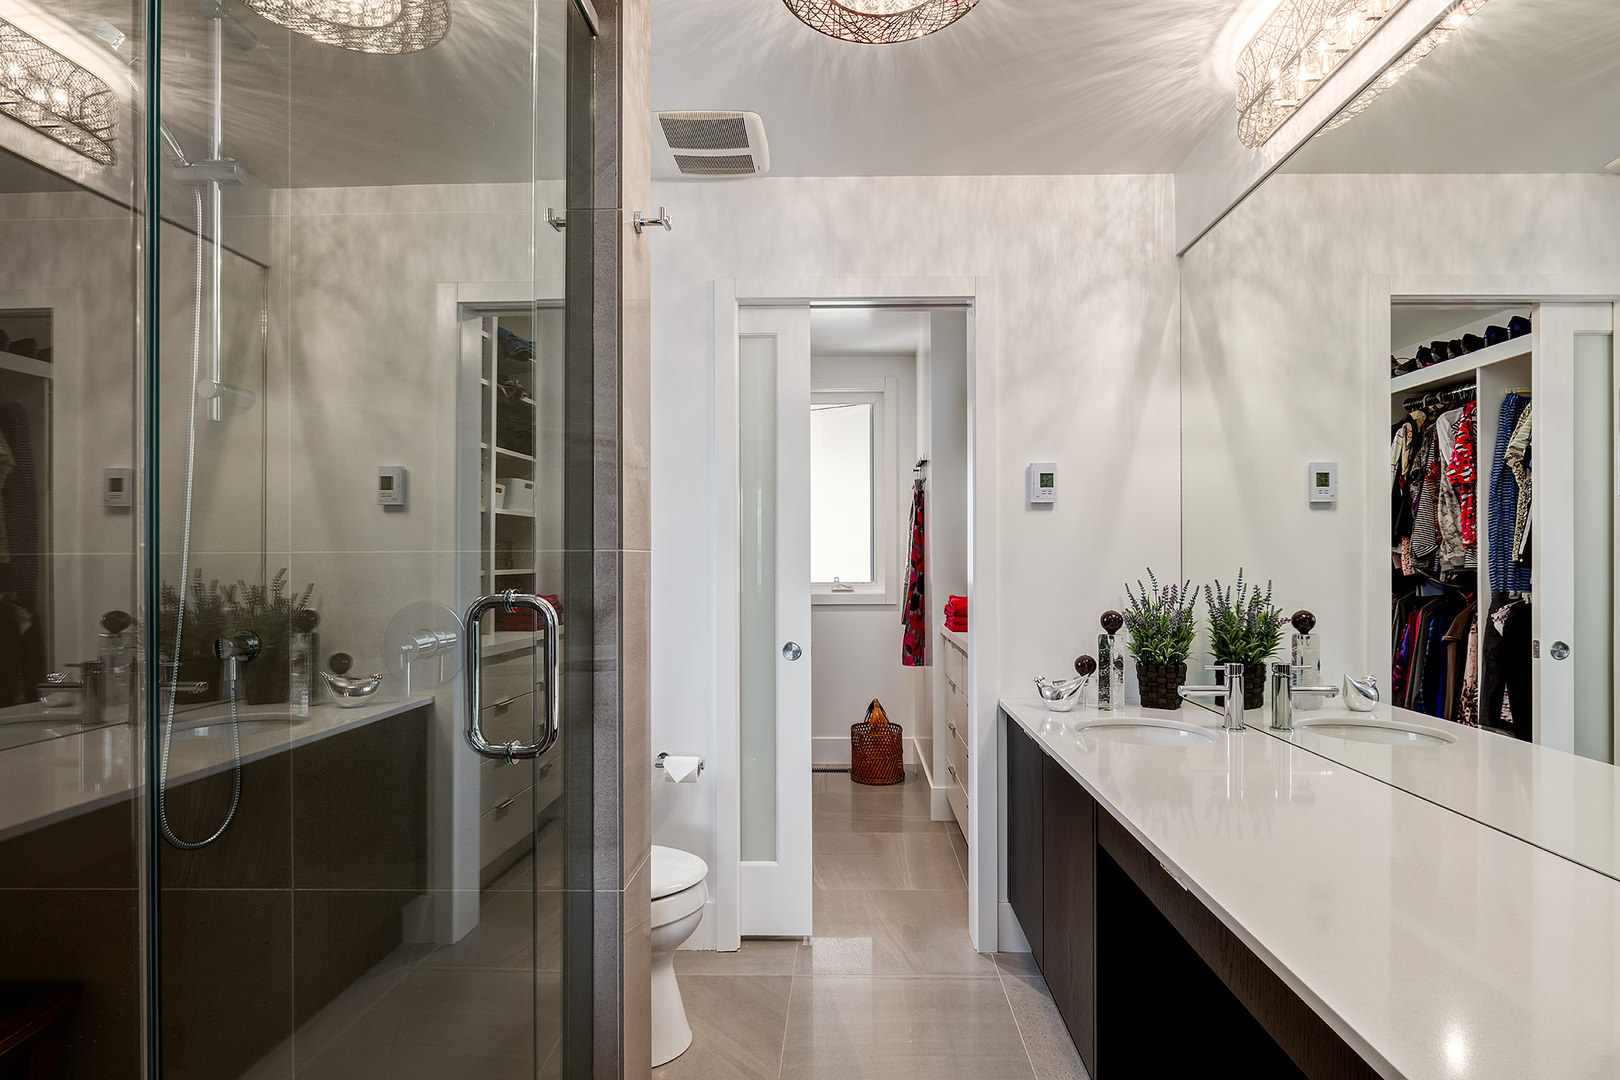 This bathroom is finished with porcelain counter top and a glass shower barrier. A few fixtures are also there like the toilet bowl, mirror and faucets. Moreover, the floor is covered with tan colored tiles extending up to the bedroom floor.